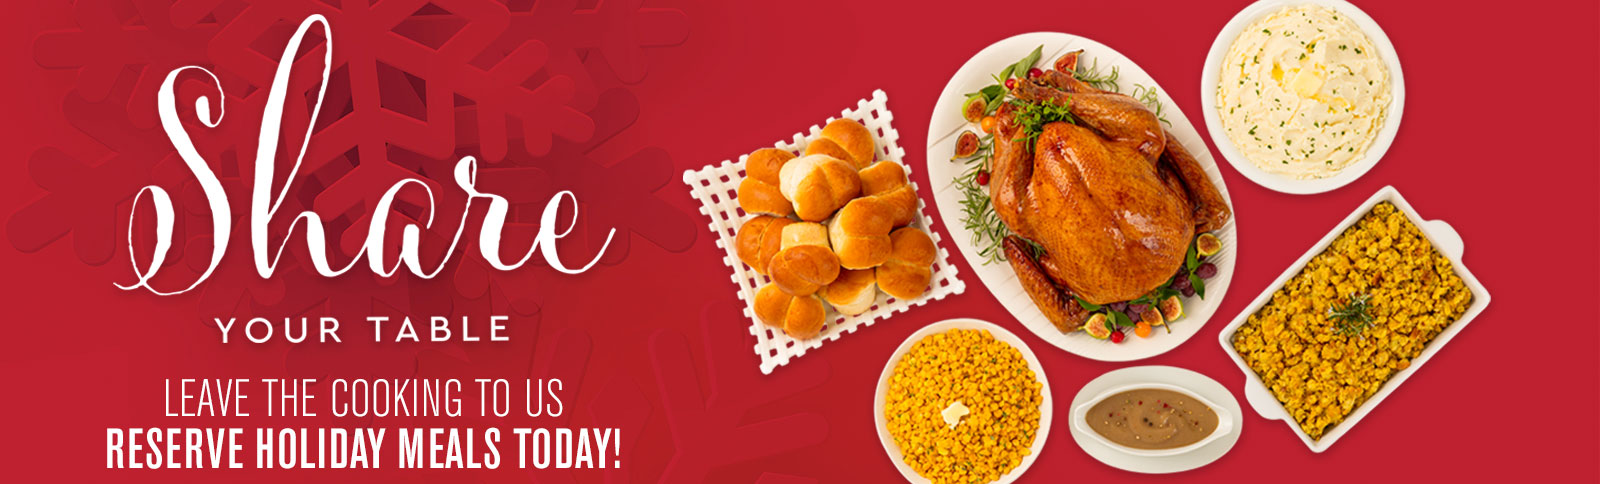 Share your Table. Holiday Meals provided by Price Chopper.